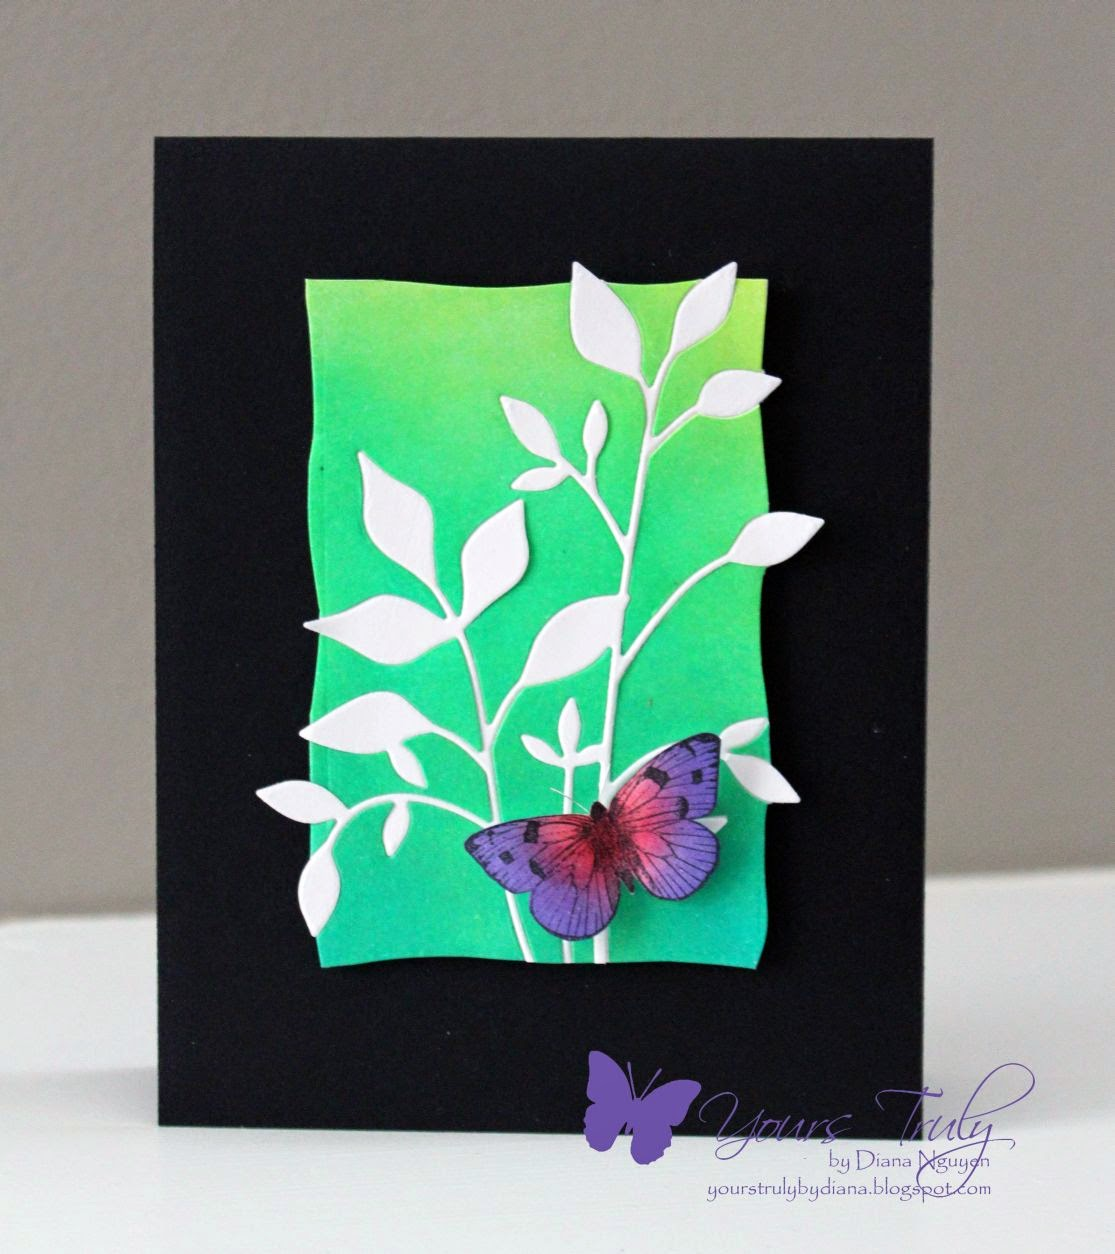 Diana Nguyen, Memory Box Fresh Foliage, Hero Arts, Ombre